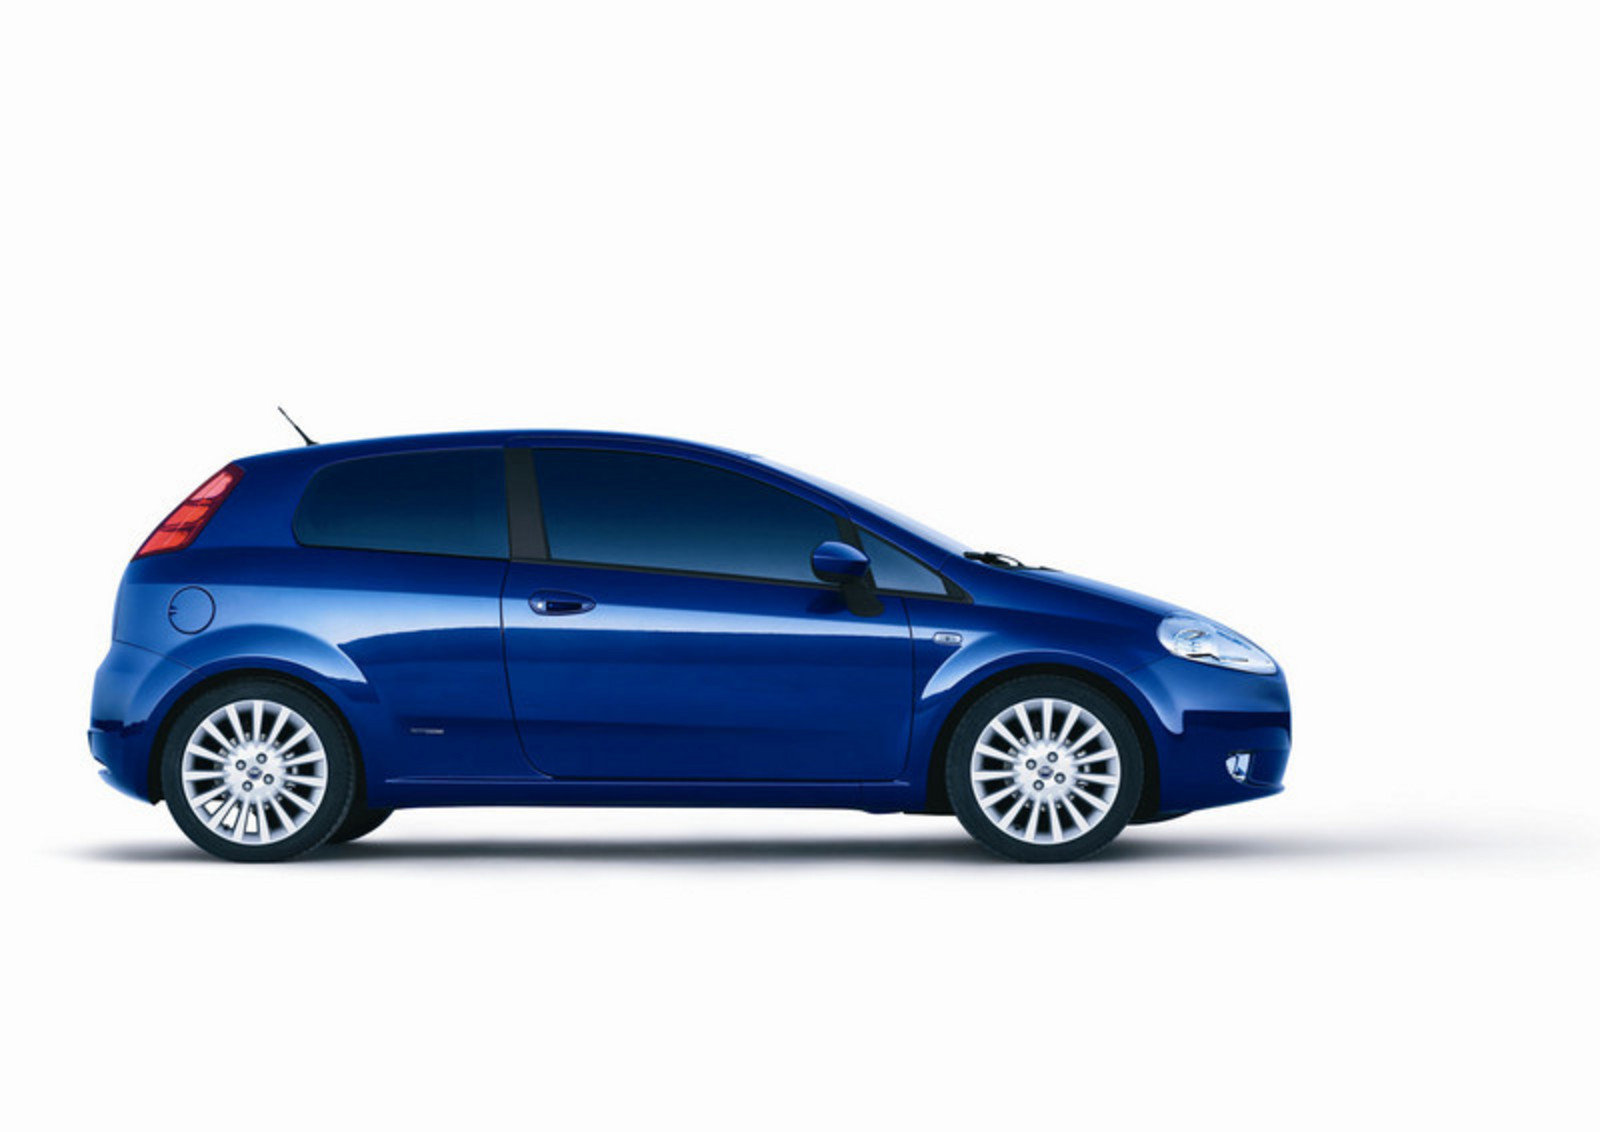 2007 fiat grande punto picture 47396 car review top speed. Black Bedroom Furniture Sets. Home Design Ideas